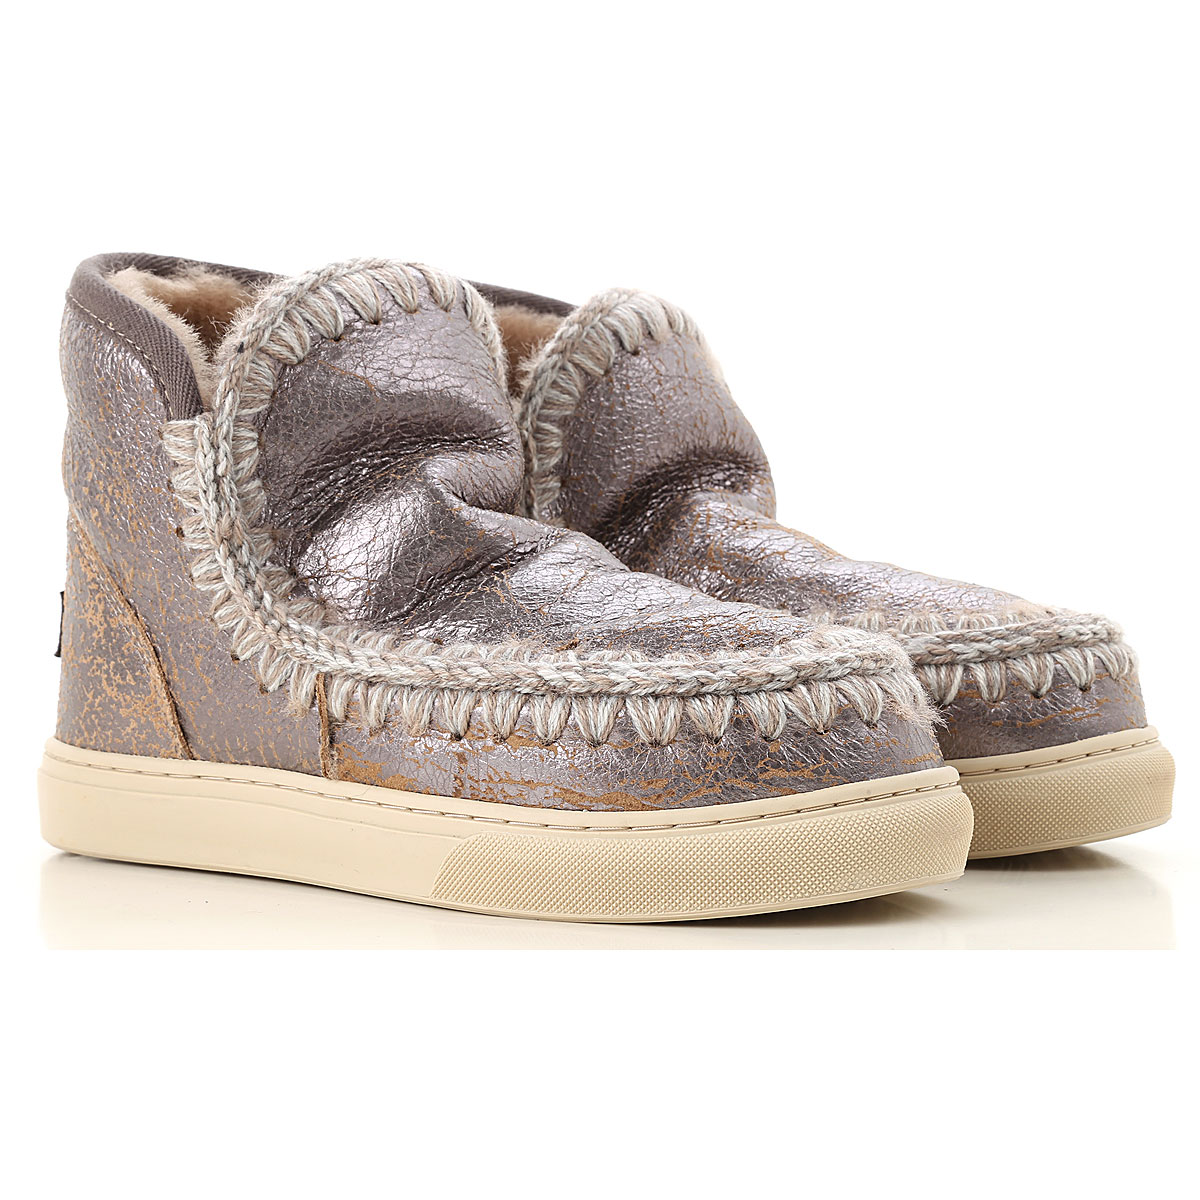 Image of Mou Boots for Women, Booties, Grey, Leather, 2017, EUR 36 - UK 3 - USA 5.5 EUR 37 - UK 4 - USA 6.5 EUR 38 - UK 5 - USA 7.5 EUR 39 - UK 6 - USA 8.5 EUR 40 - UK 7 - USA 9.5